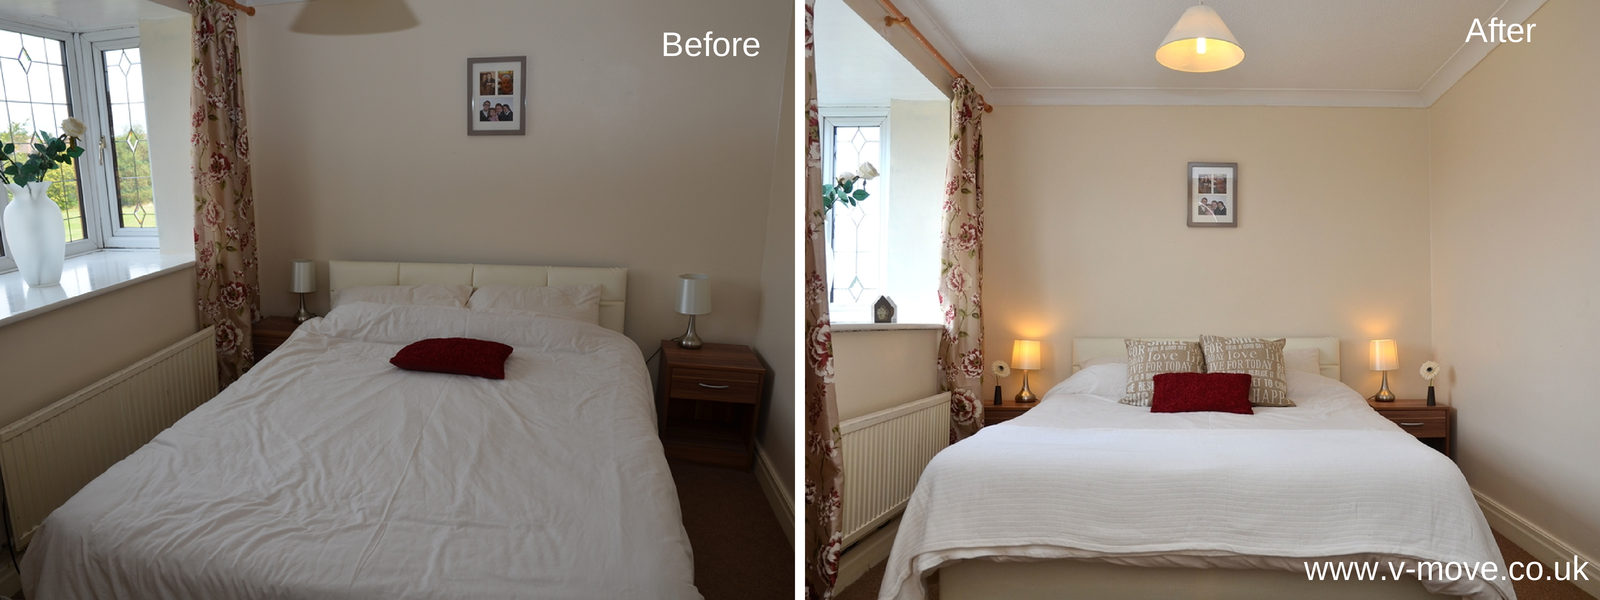 Bedroom before and after to sell